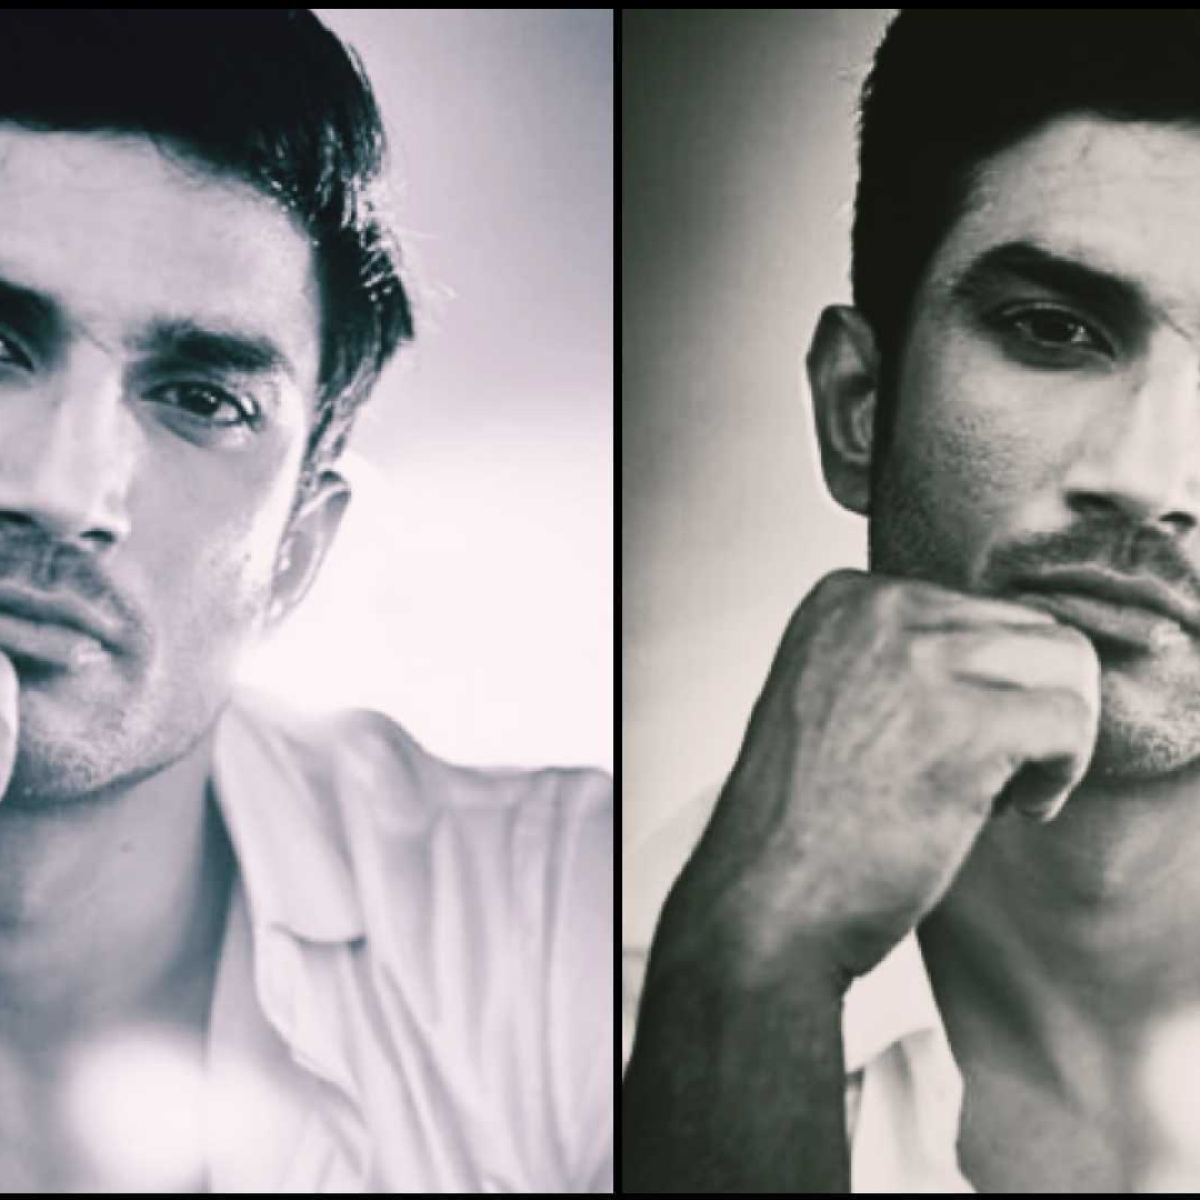 Man who claimed to have seen marks on Sushant Singh Rajput's body says he enjoys going to funerals